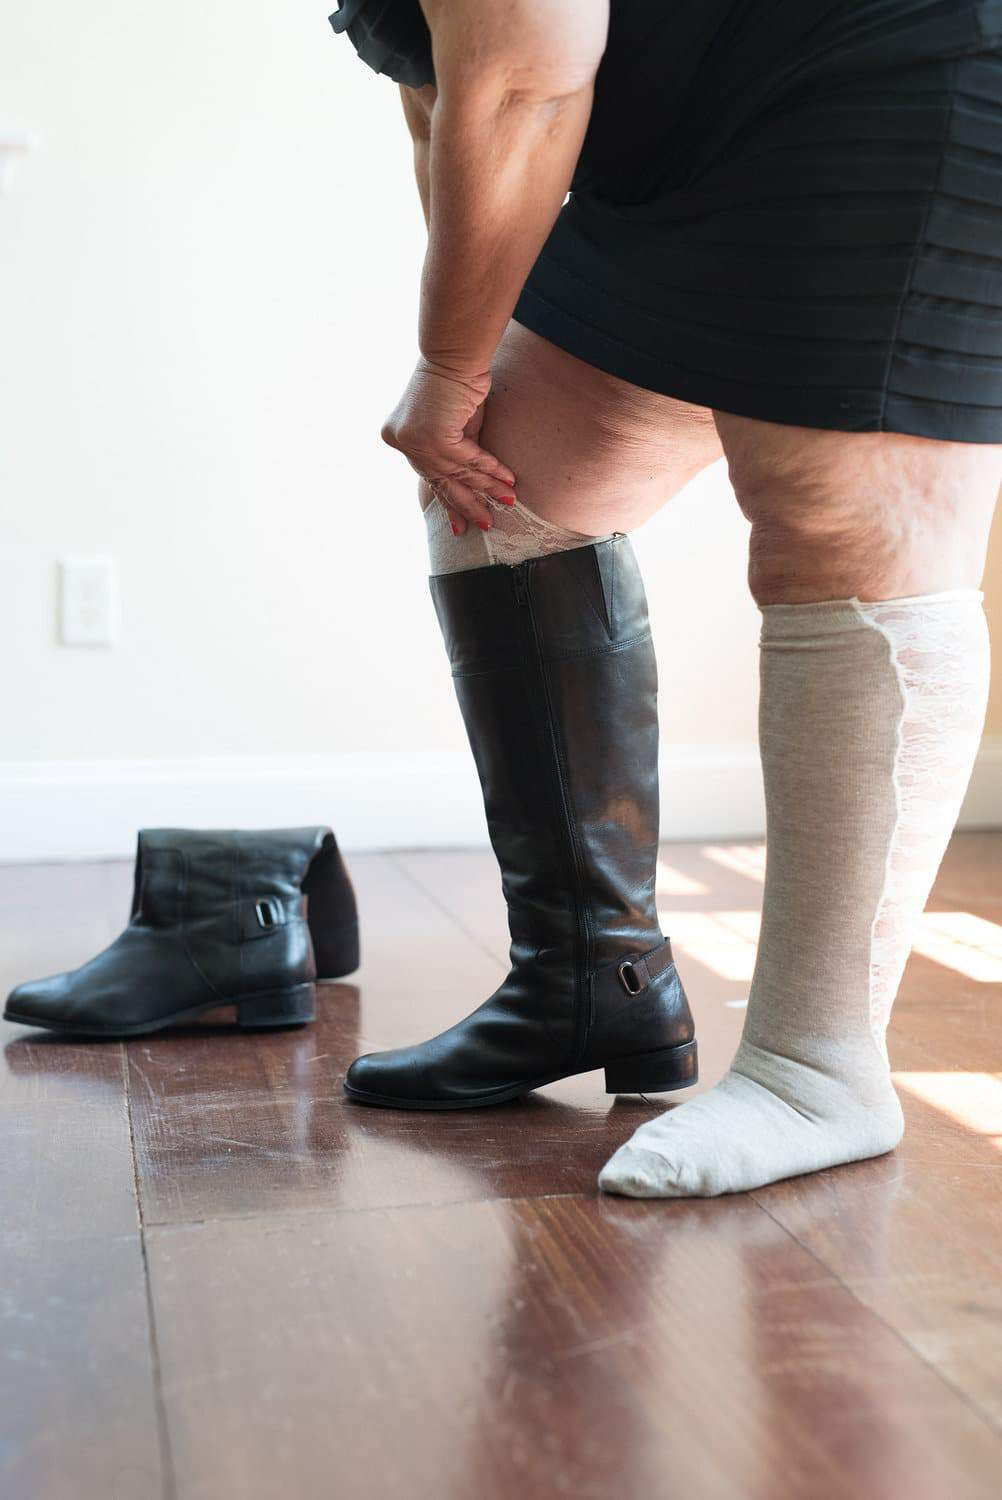 Wardrobe Wonders: Need Socks for Your Wide Calves? Meet Xpandasox